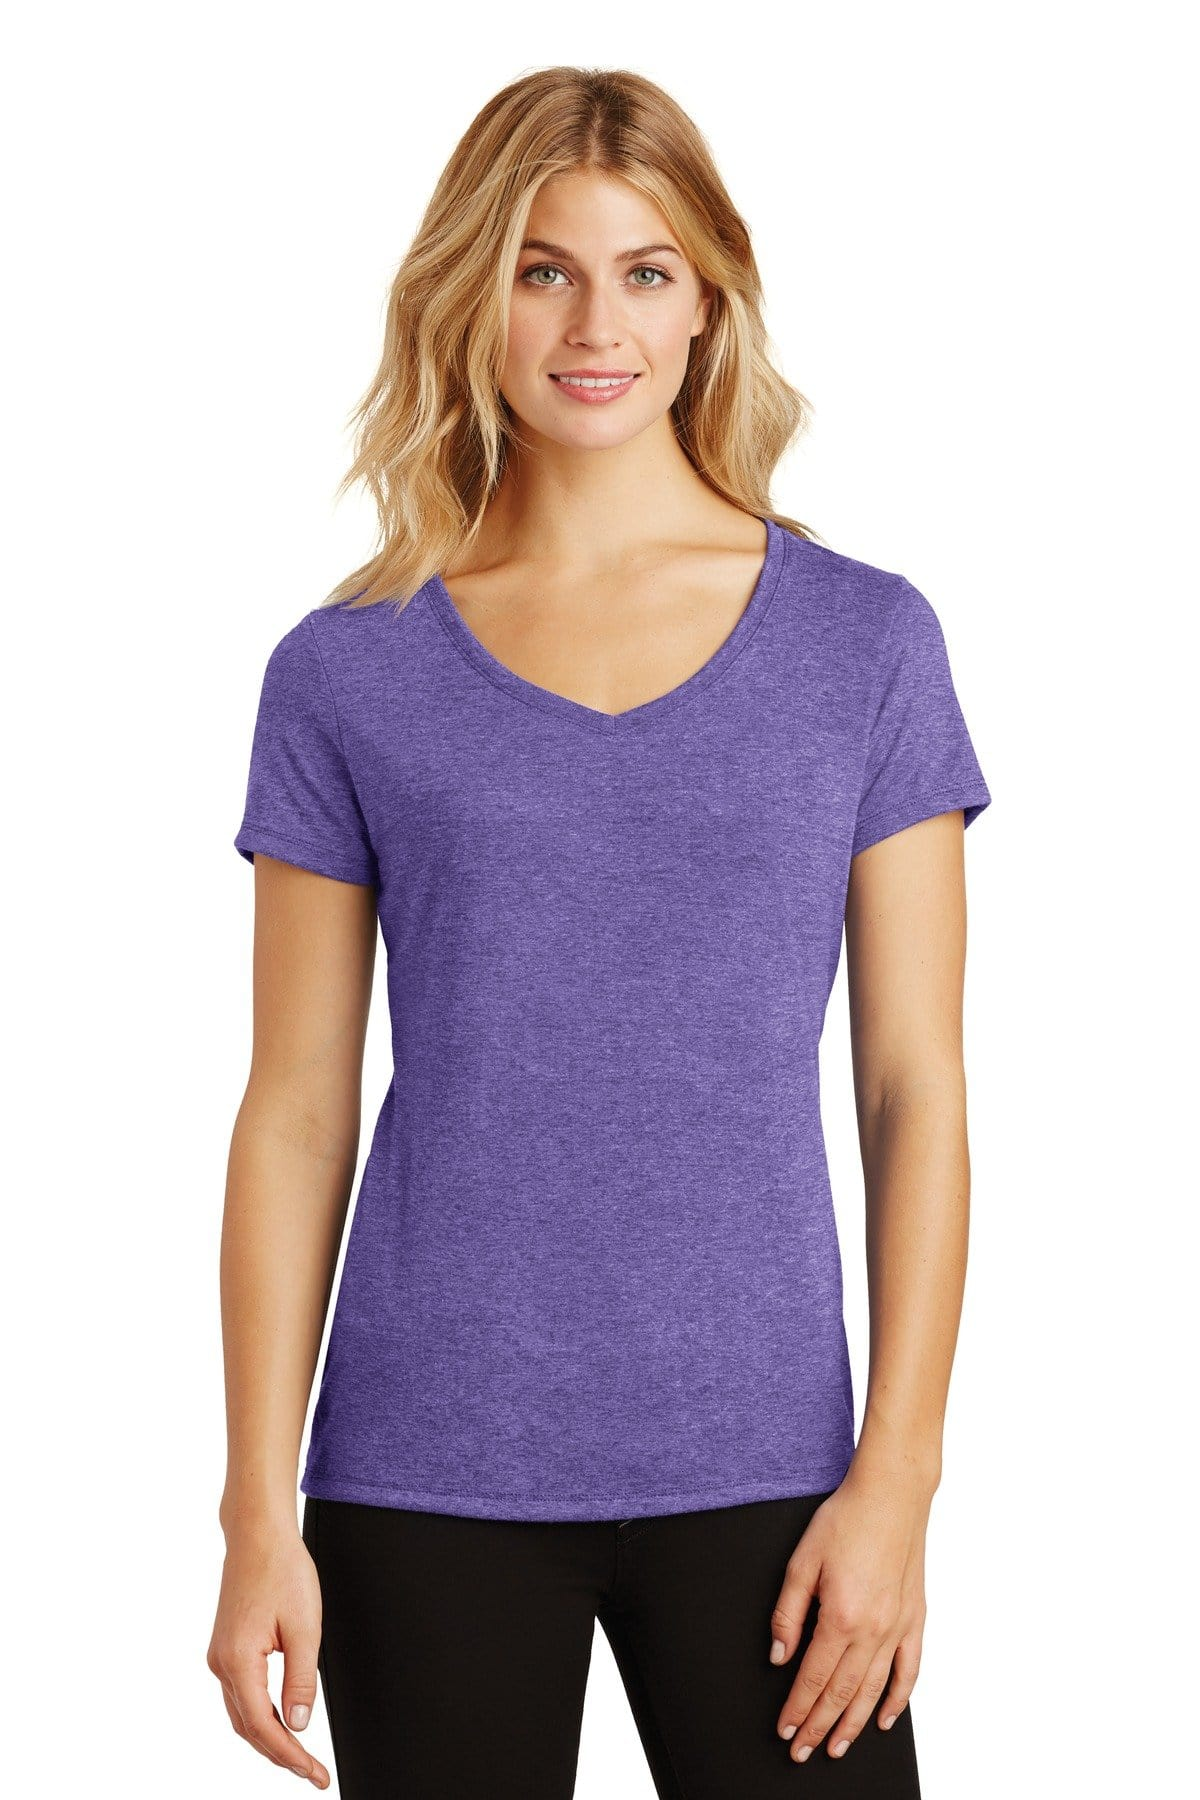 District ® Women's Perfect Tri ® V-Neck Tee. DM1350L, Basic Colors-Ladies-wholesale apparel